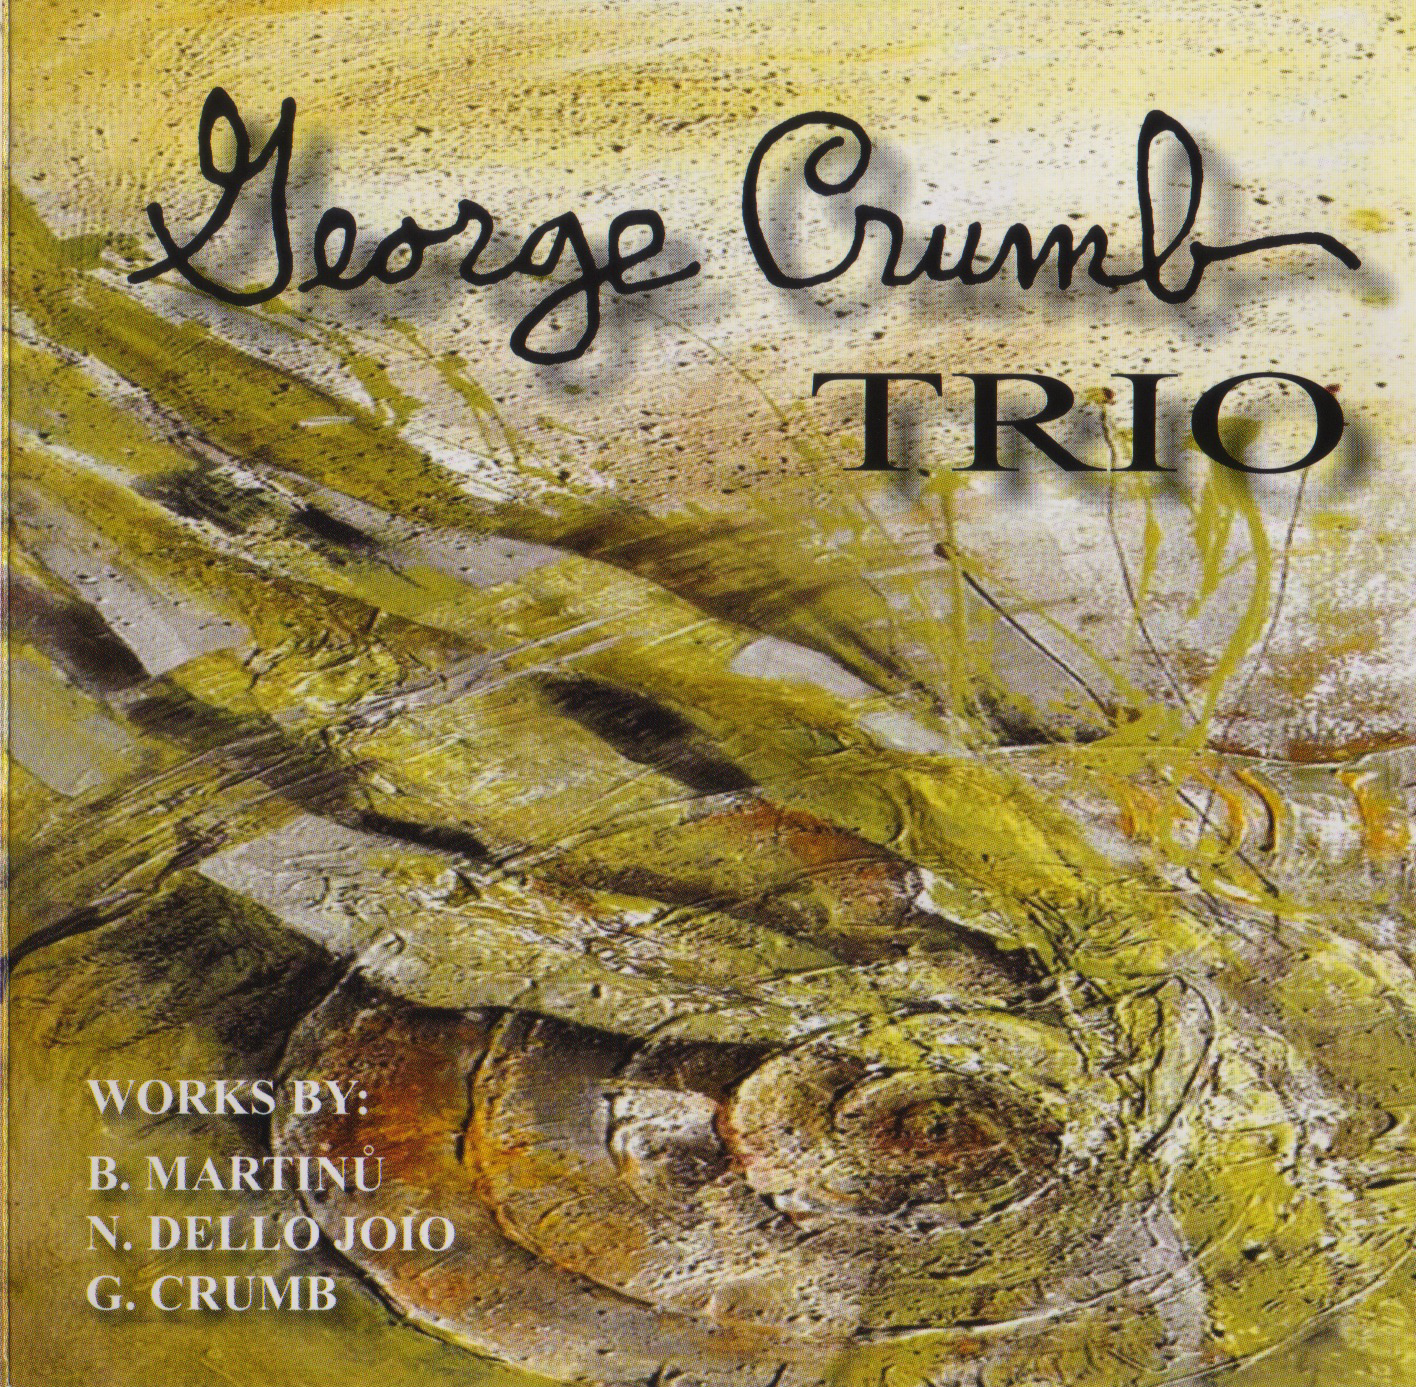 CD George Crumb Trio